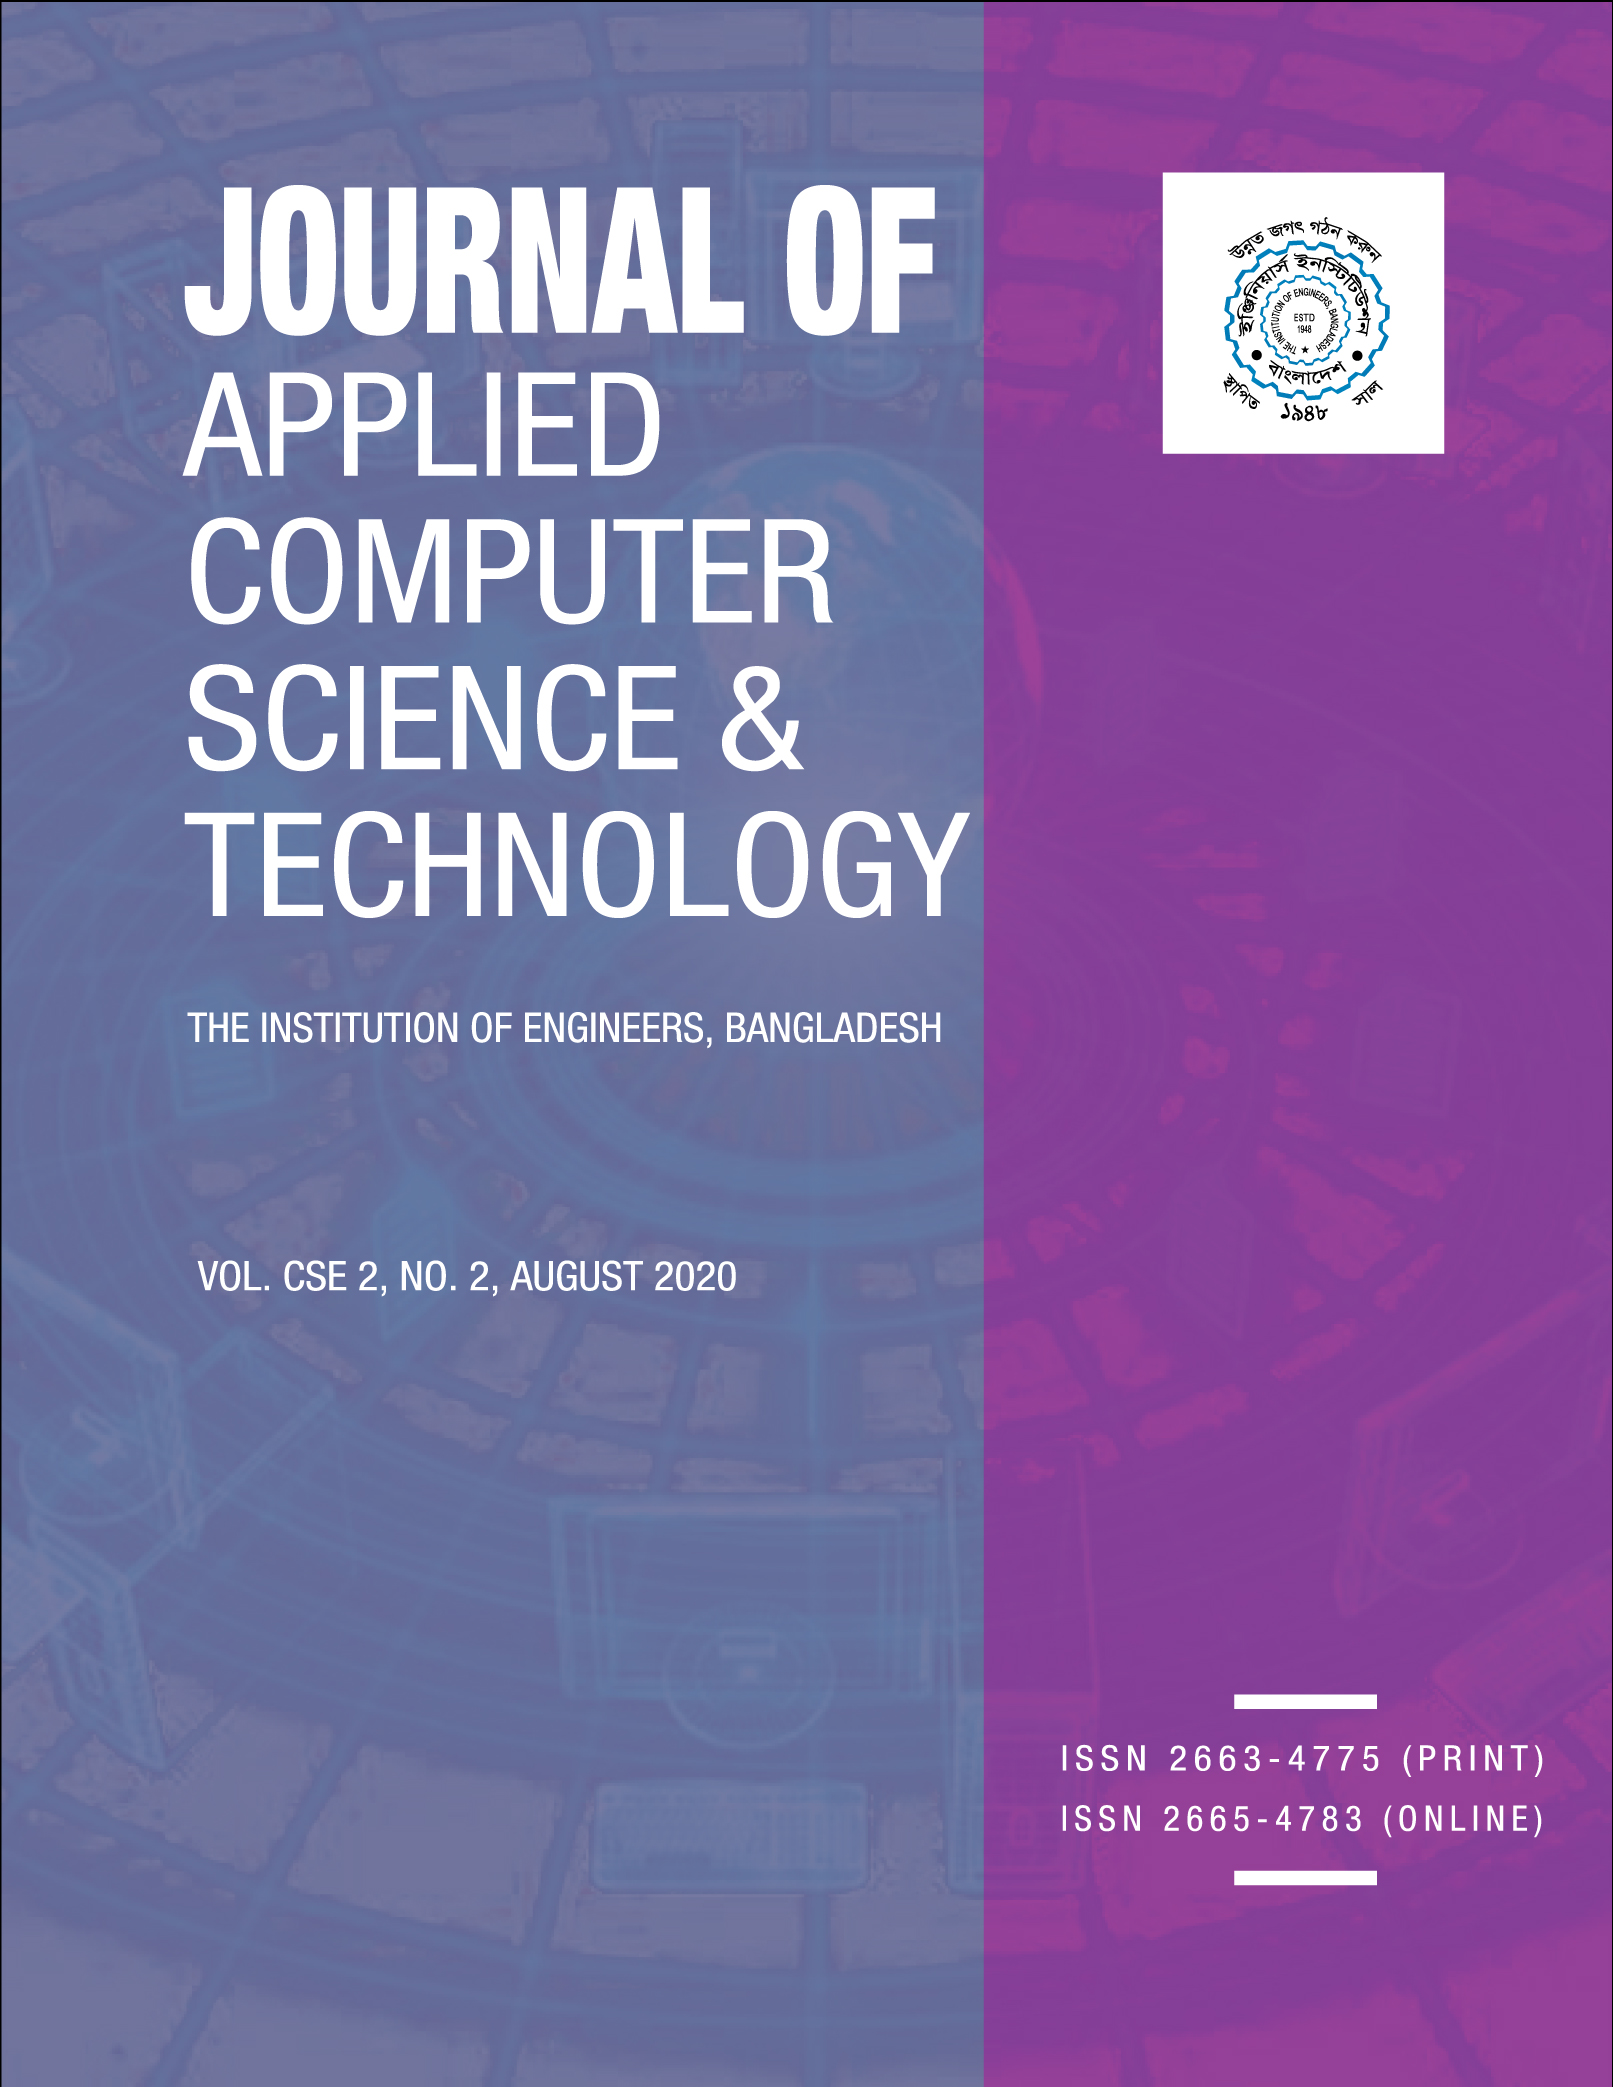 Journal of Applied Computer Science & Technology Vol:  CSE 2, No. 2, August 2020